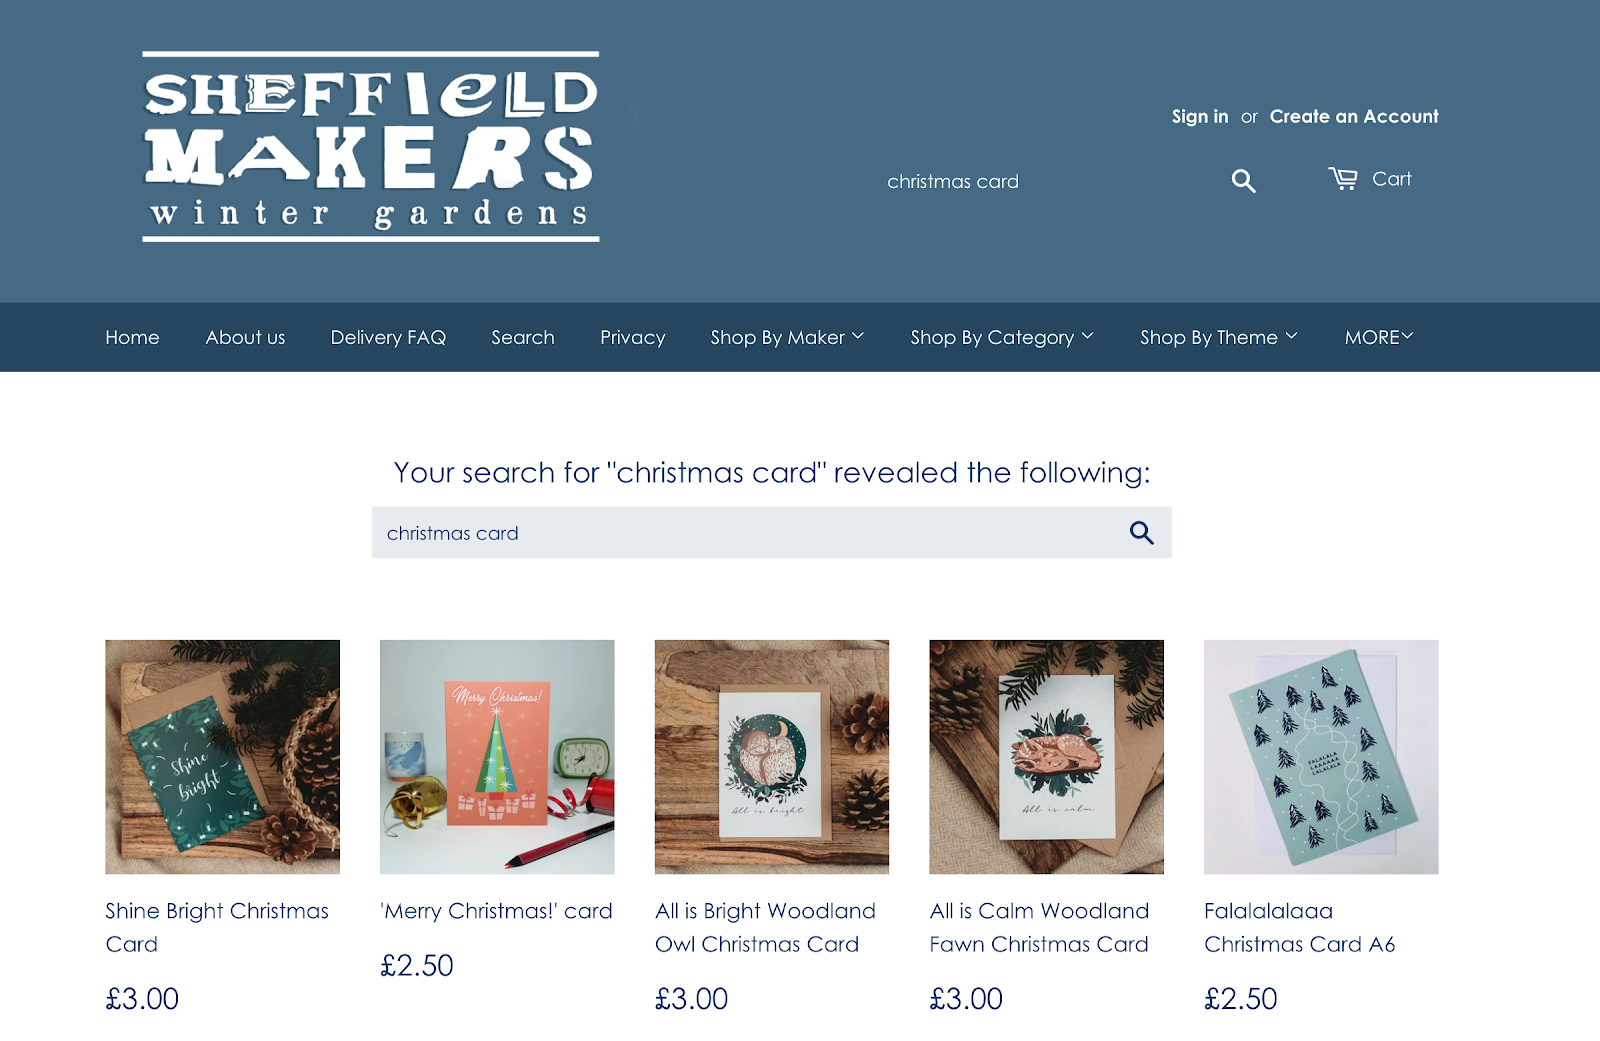 Sheffield Makers search results for Christmas cards